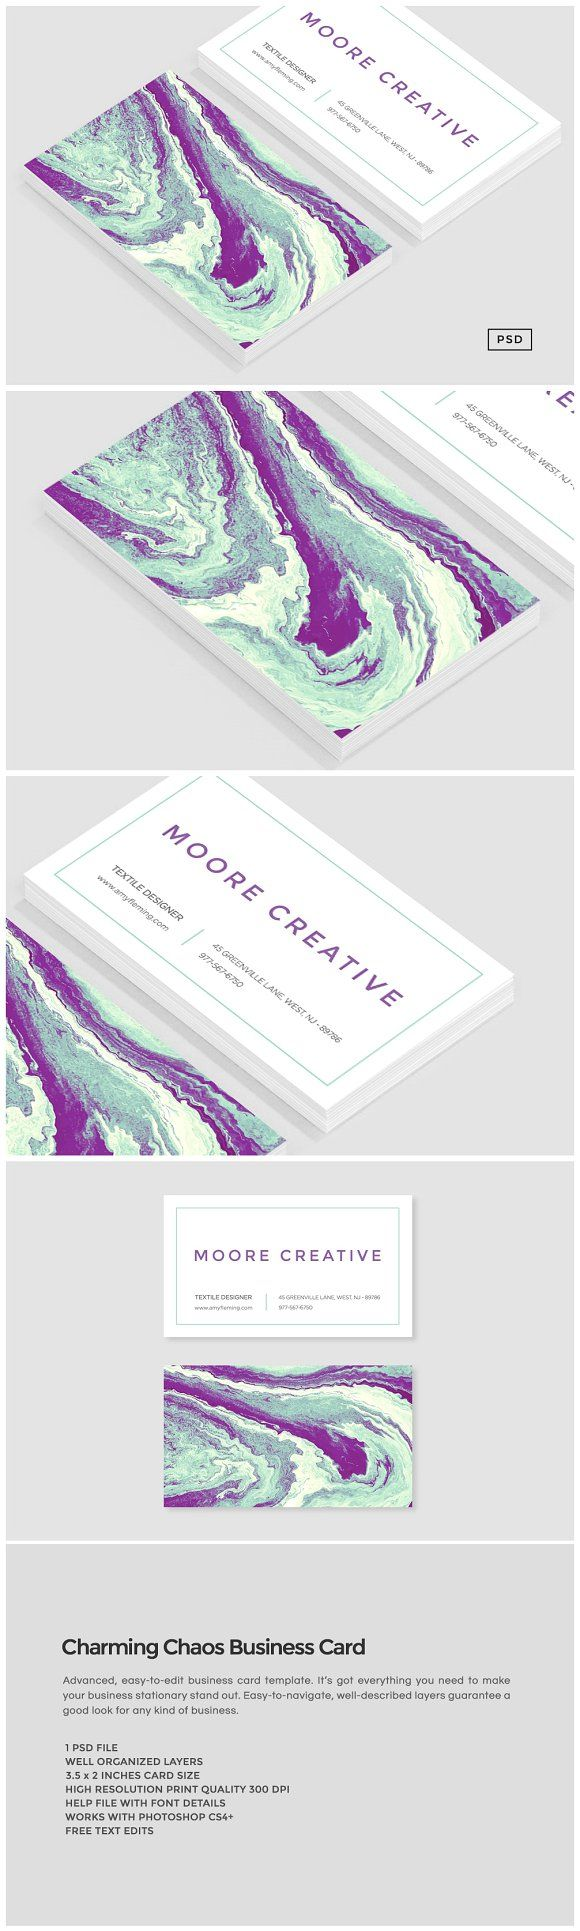 9 Best Business Cards Eszadesign Images On Pinterest Silhouette